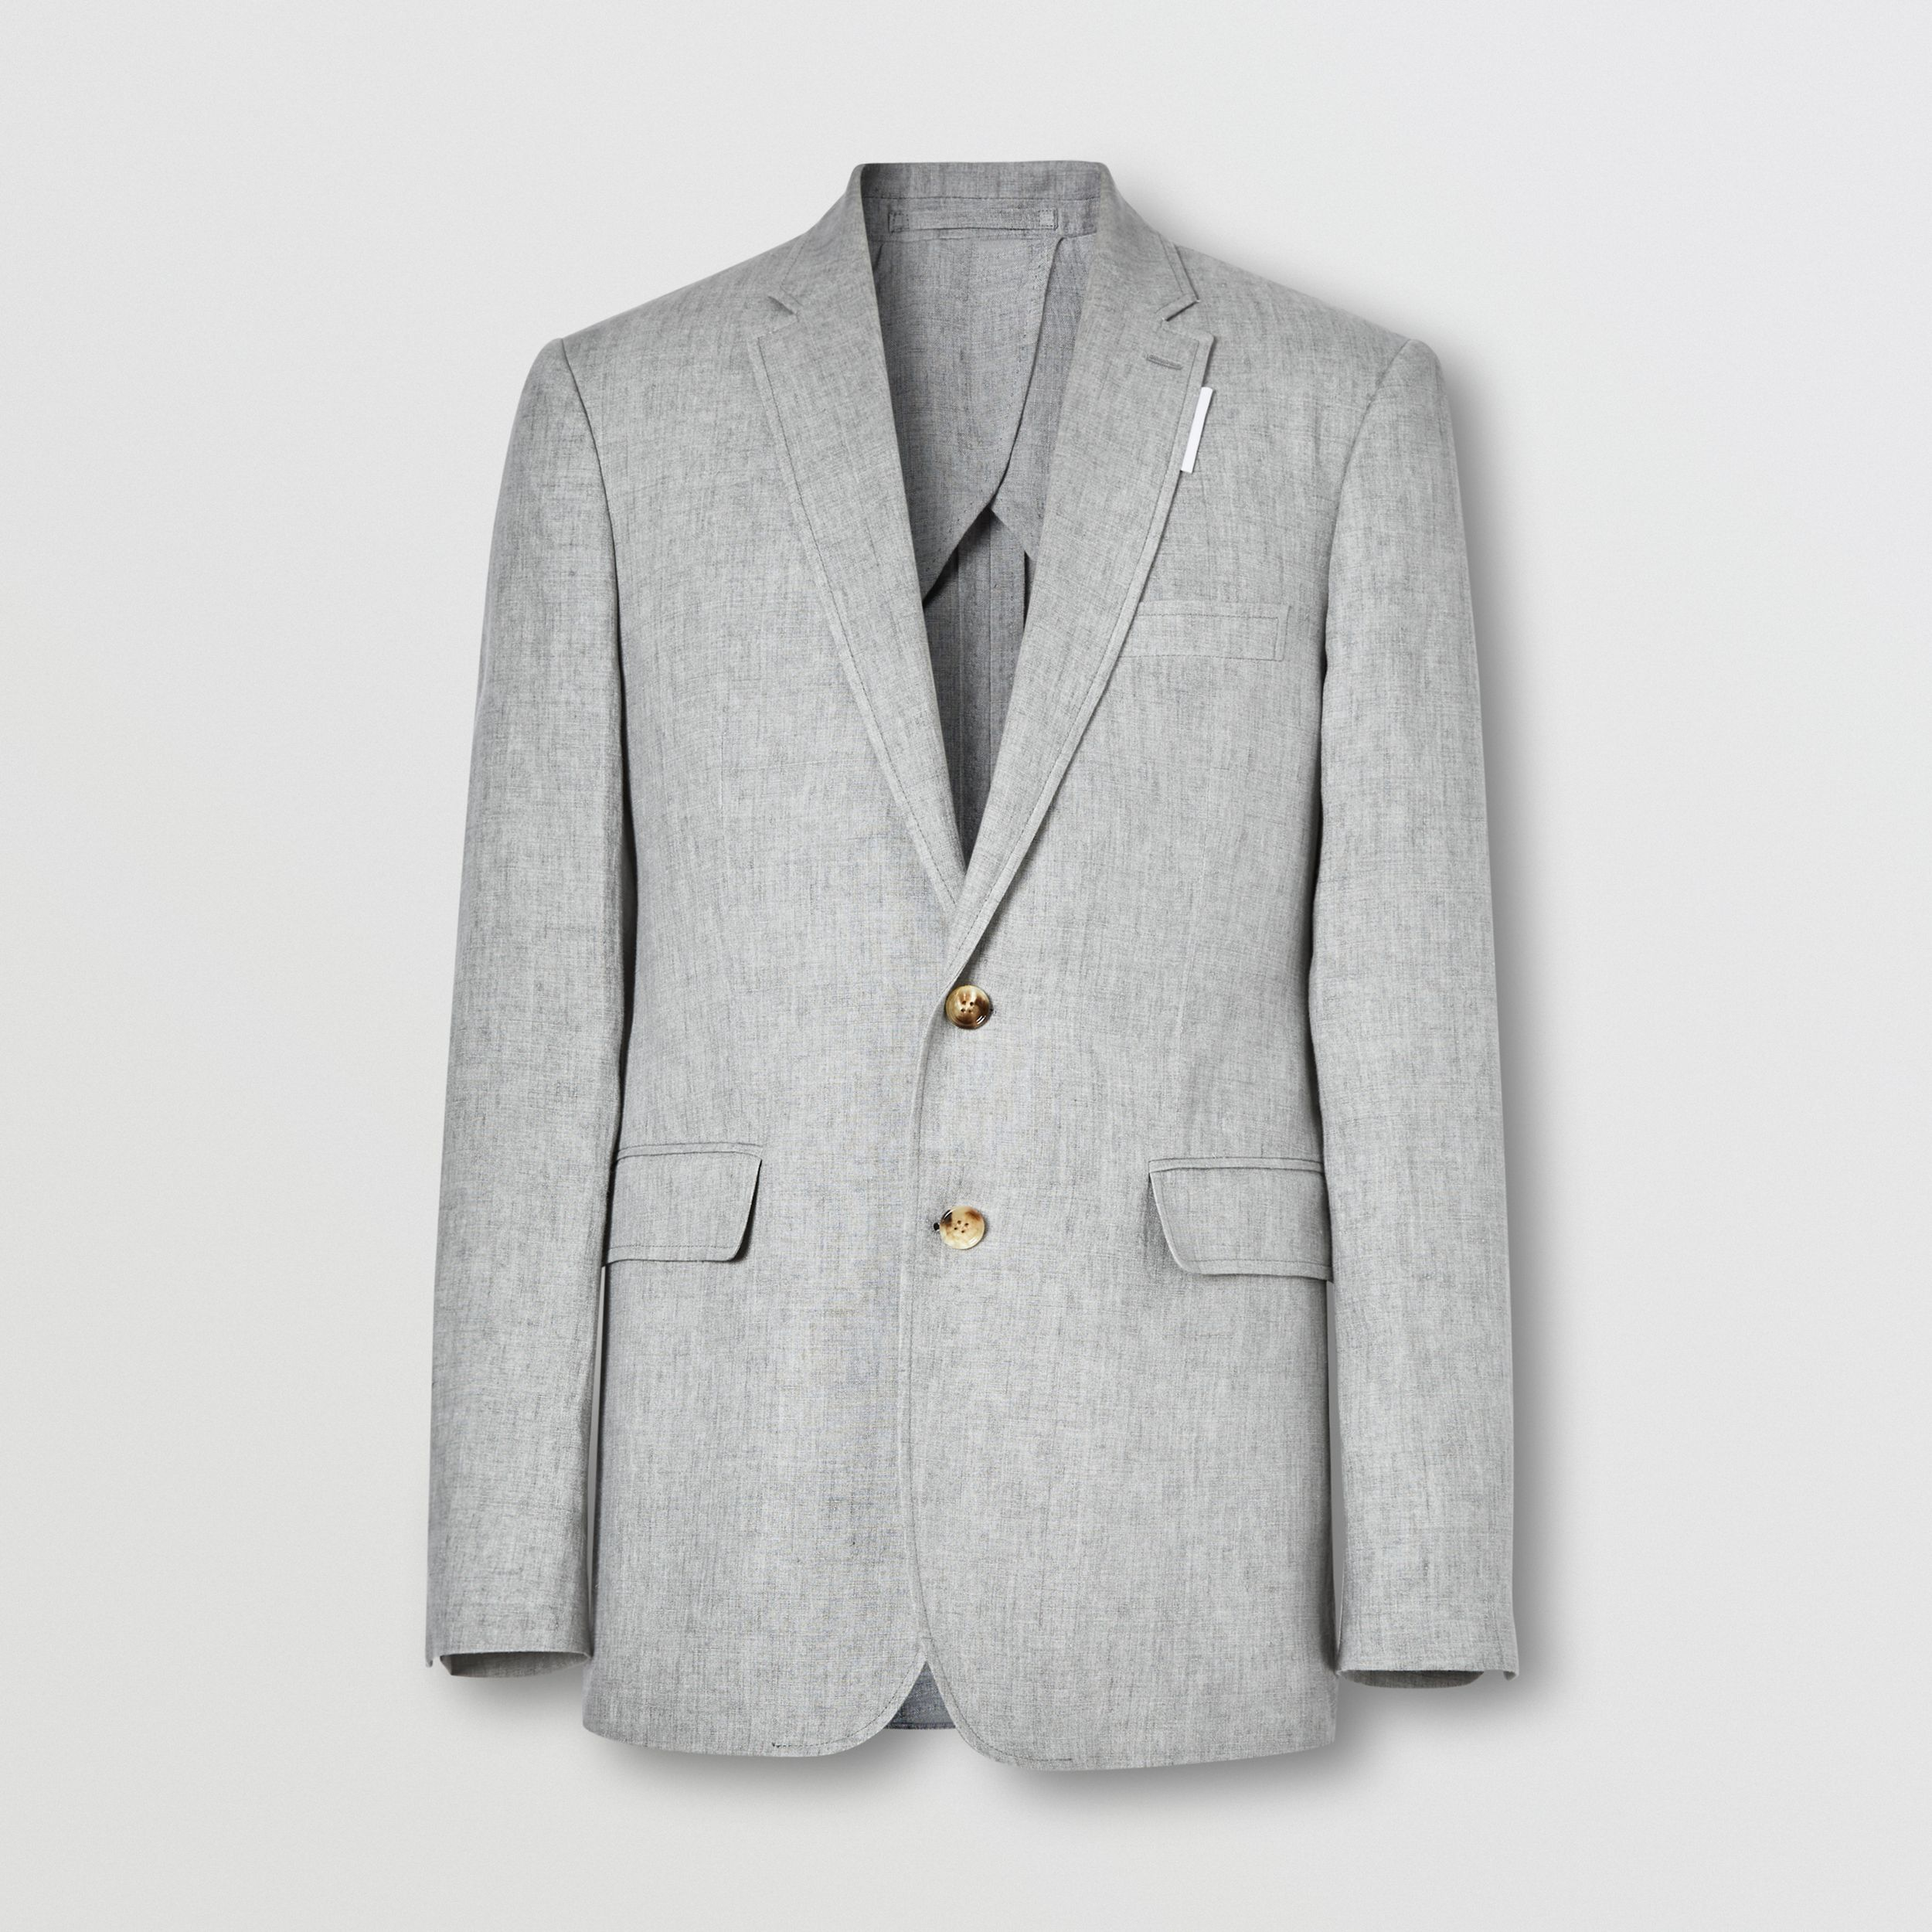 Slim Fit Linen Tailored Jacket in Heather Melange - Men | Burberry - 4